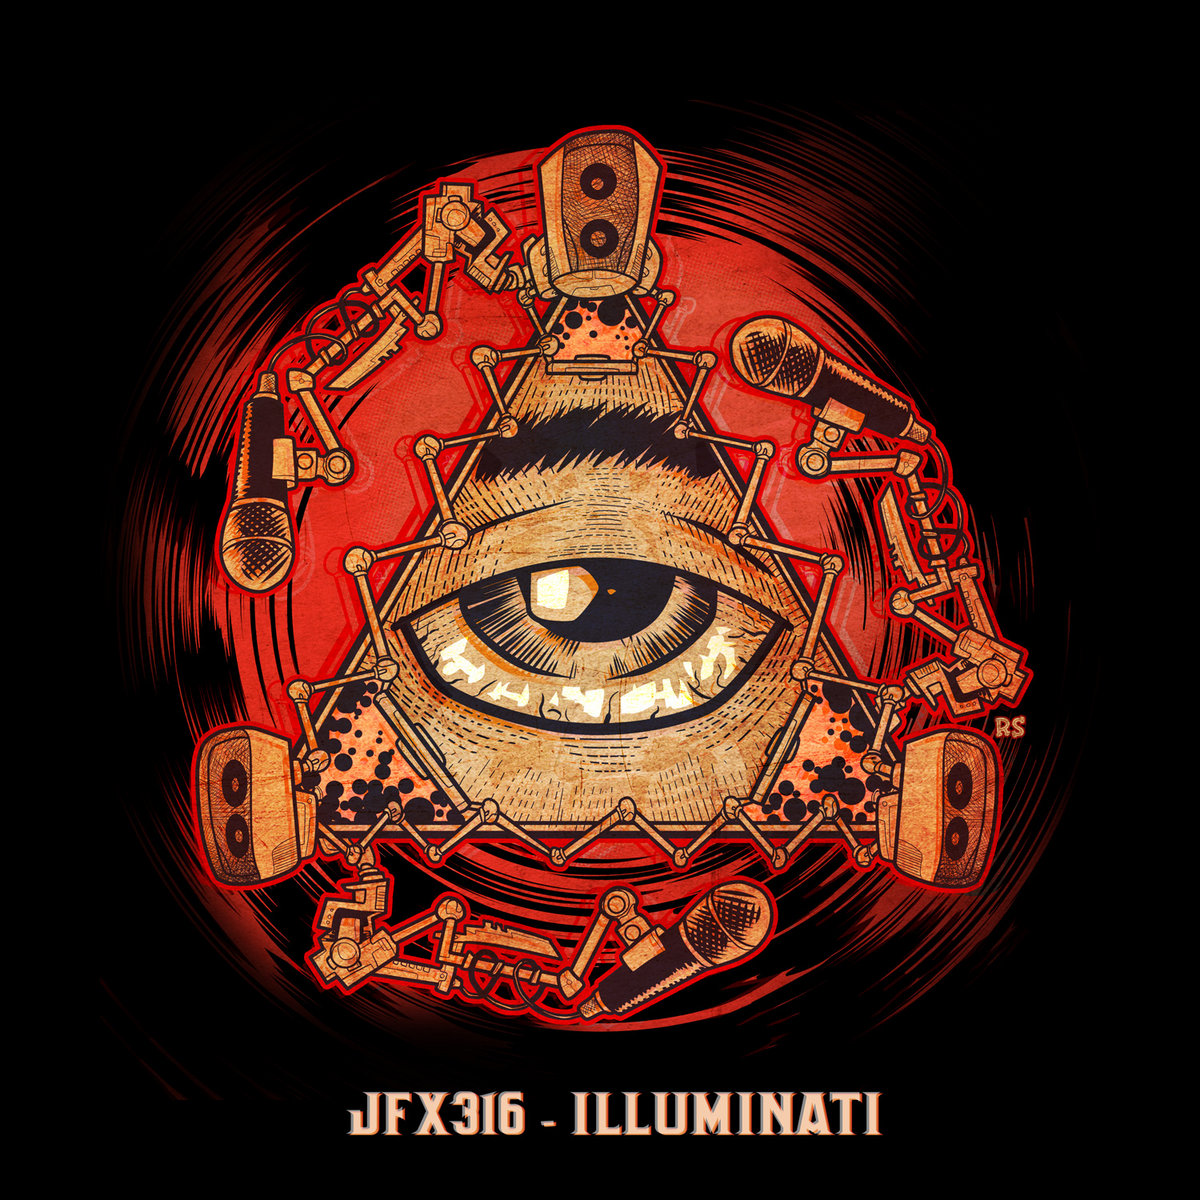 illuminati art - photo #23